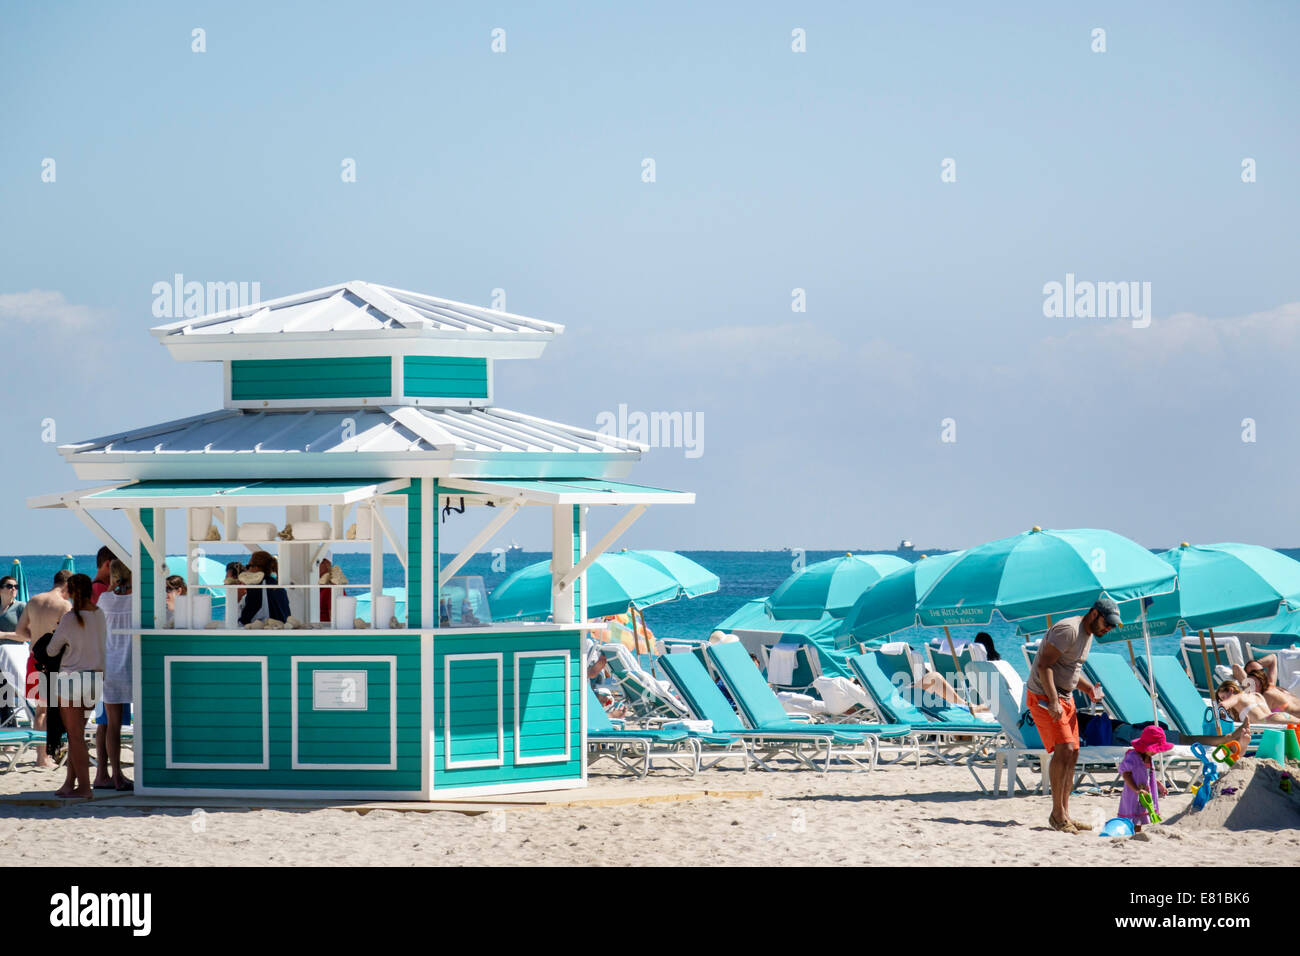 Superior Miami Beach Florida Kiosk Rental Umbrellas Lounge Chairs Atlantic Ocean